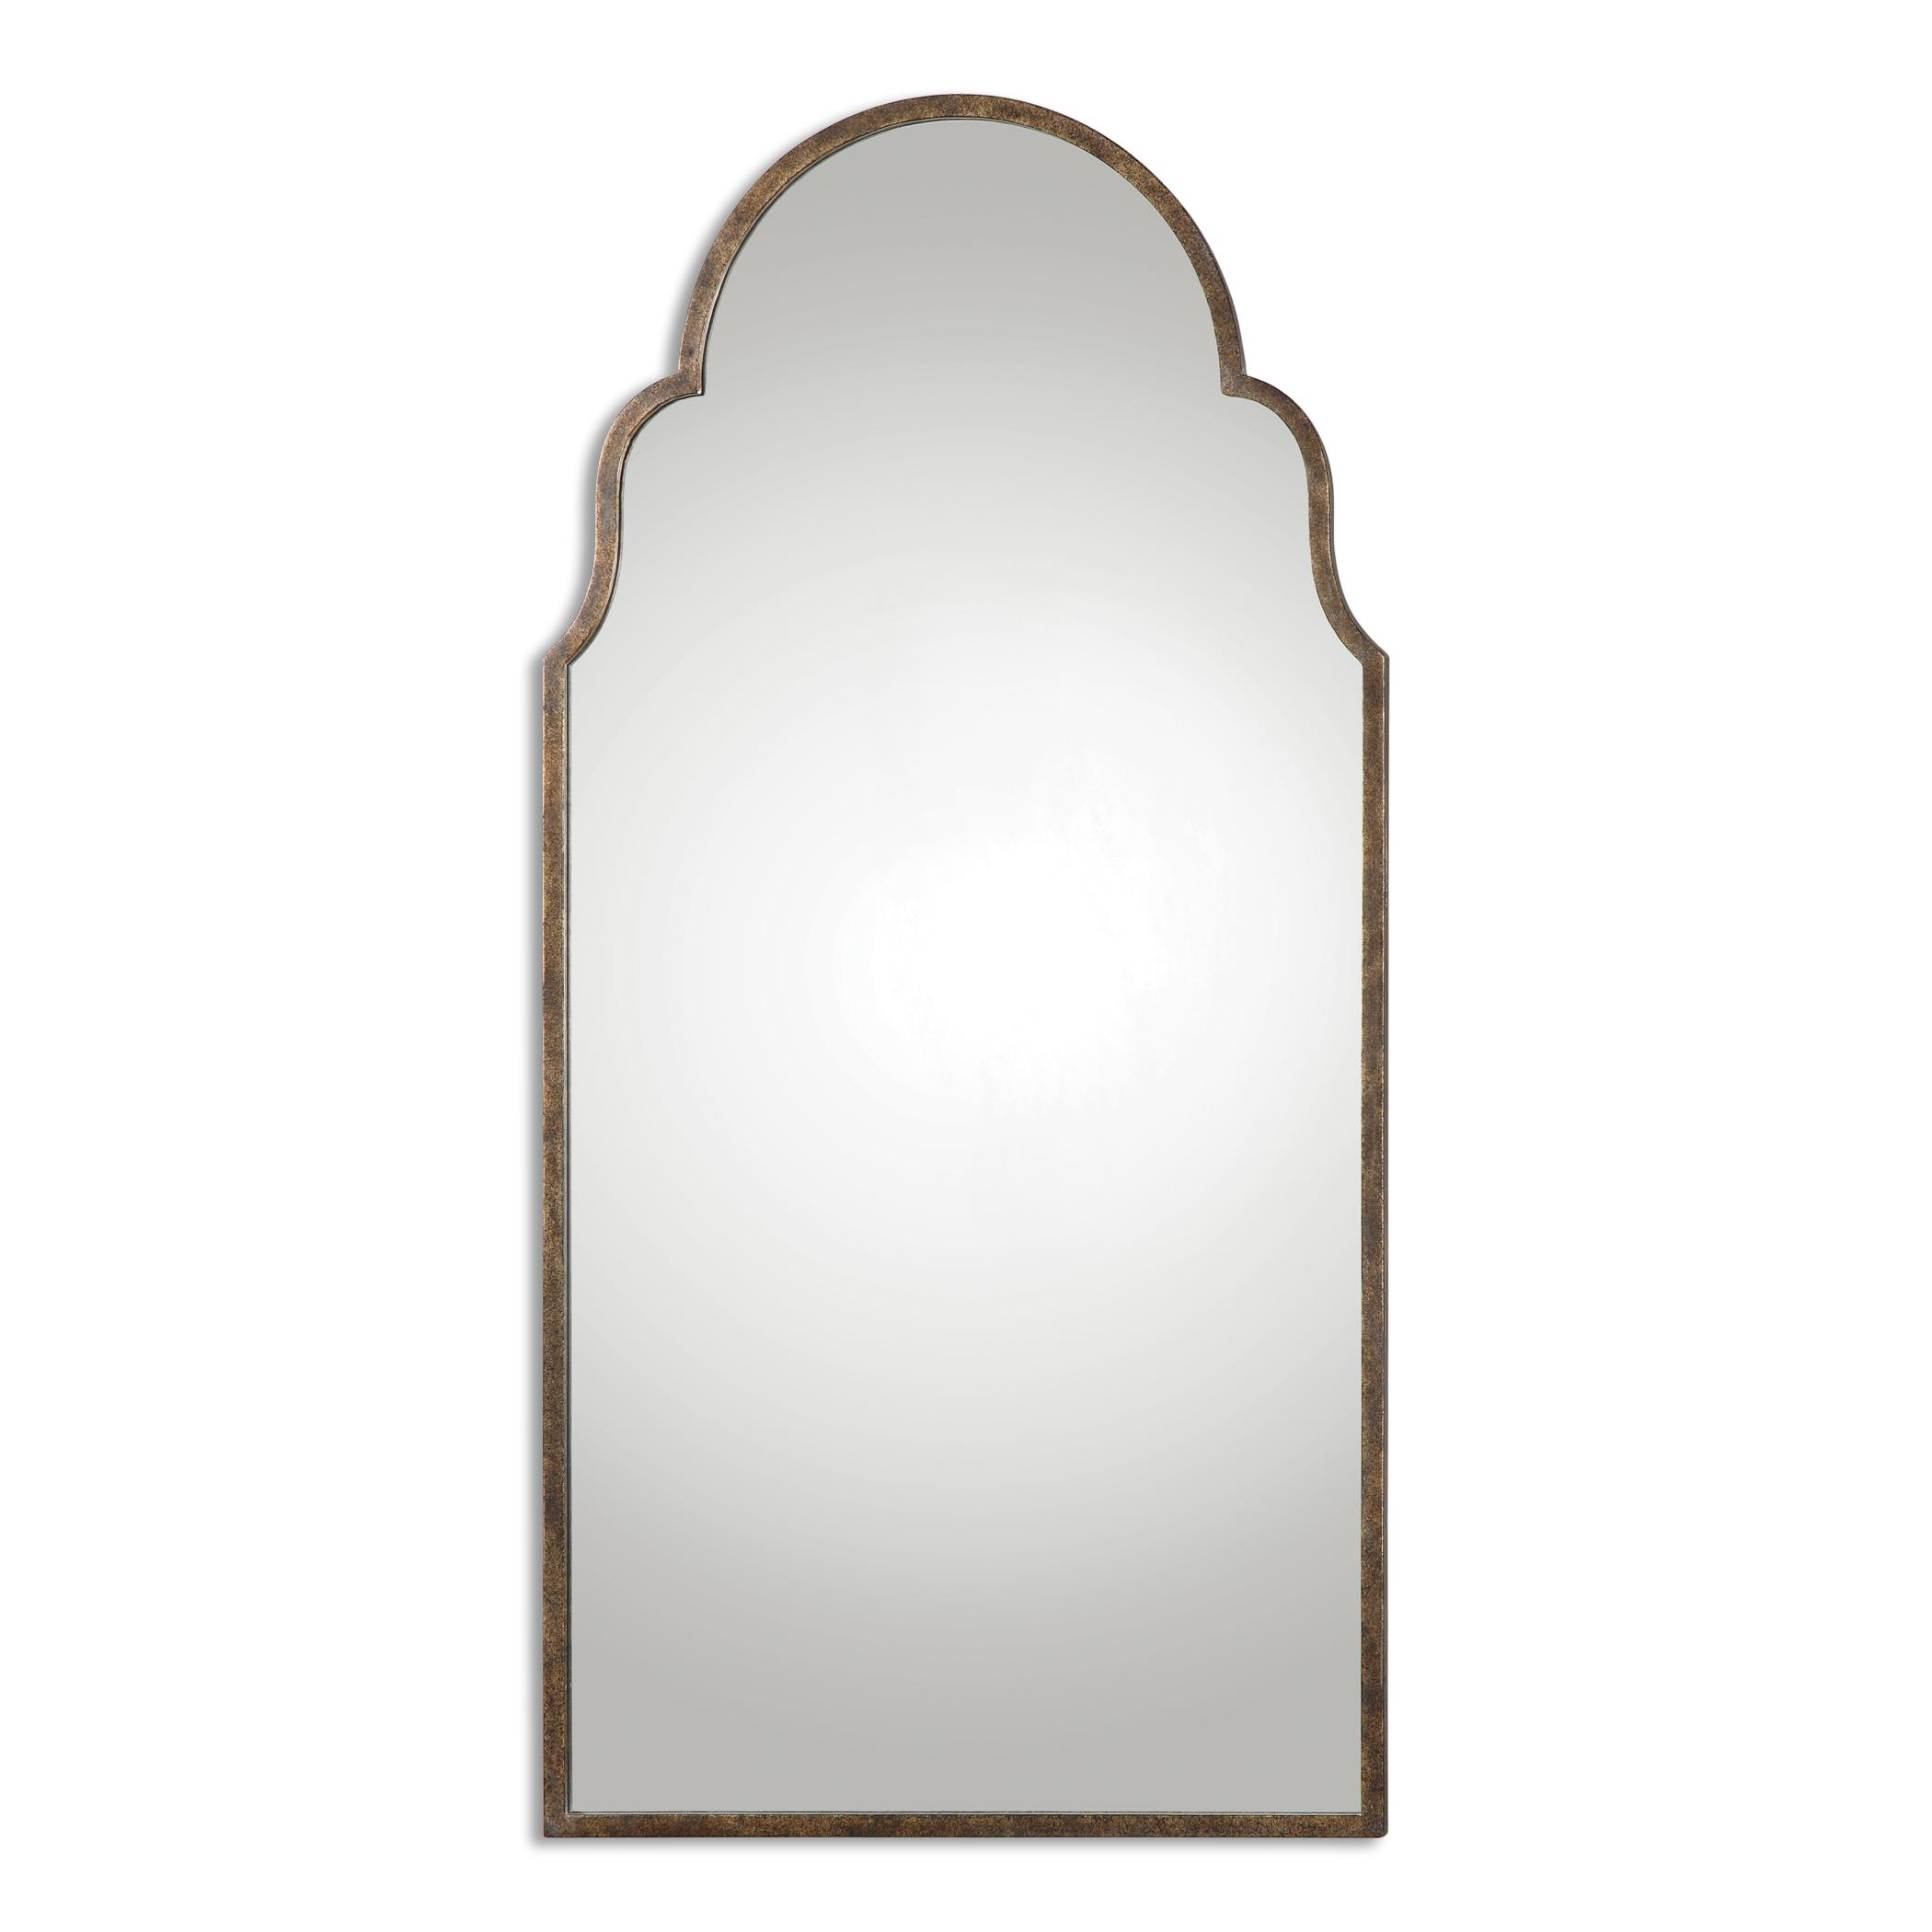 Uttermost Mirrors Brayden Tall Arch Mirror - Item Number: 12905